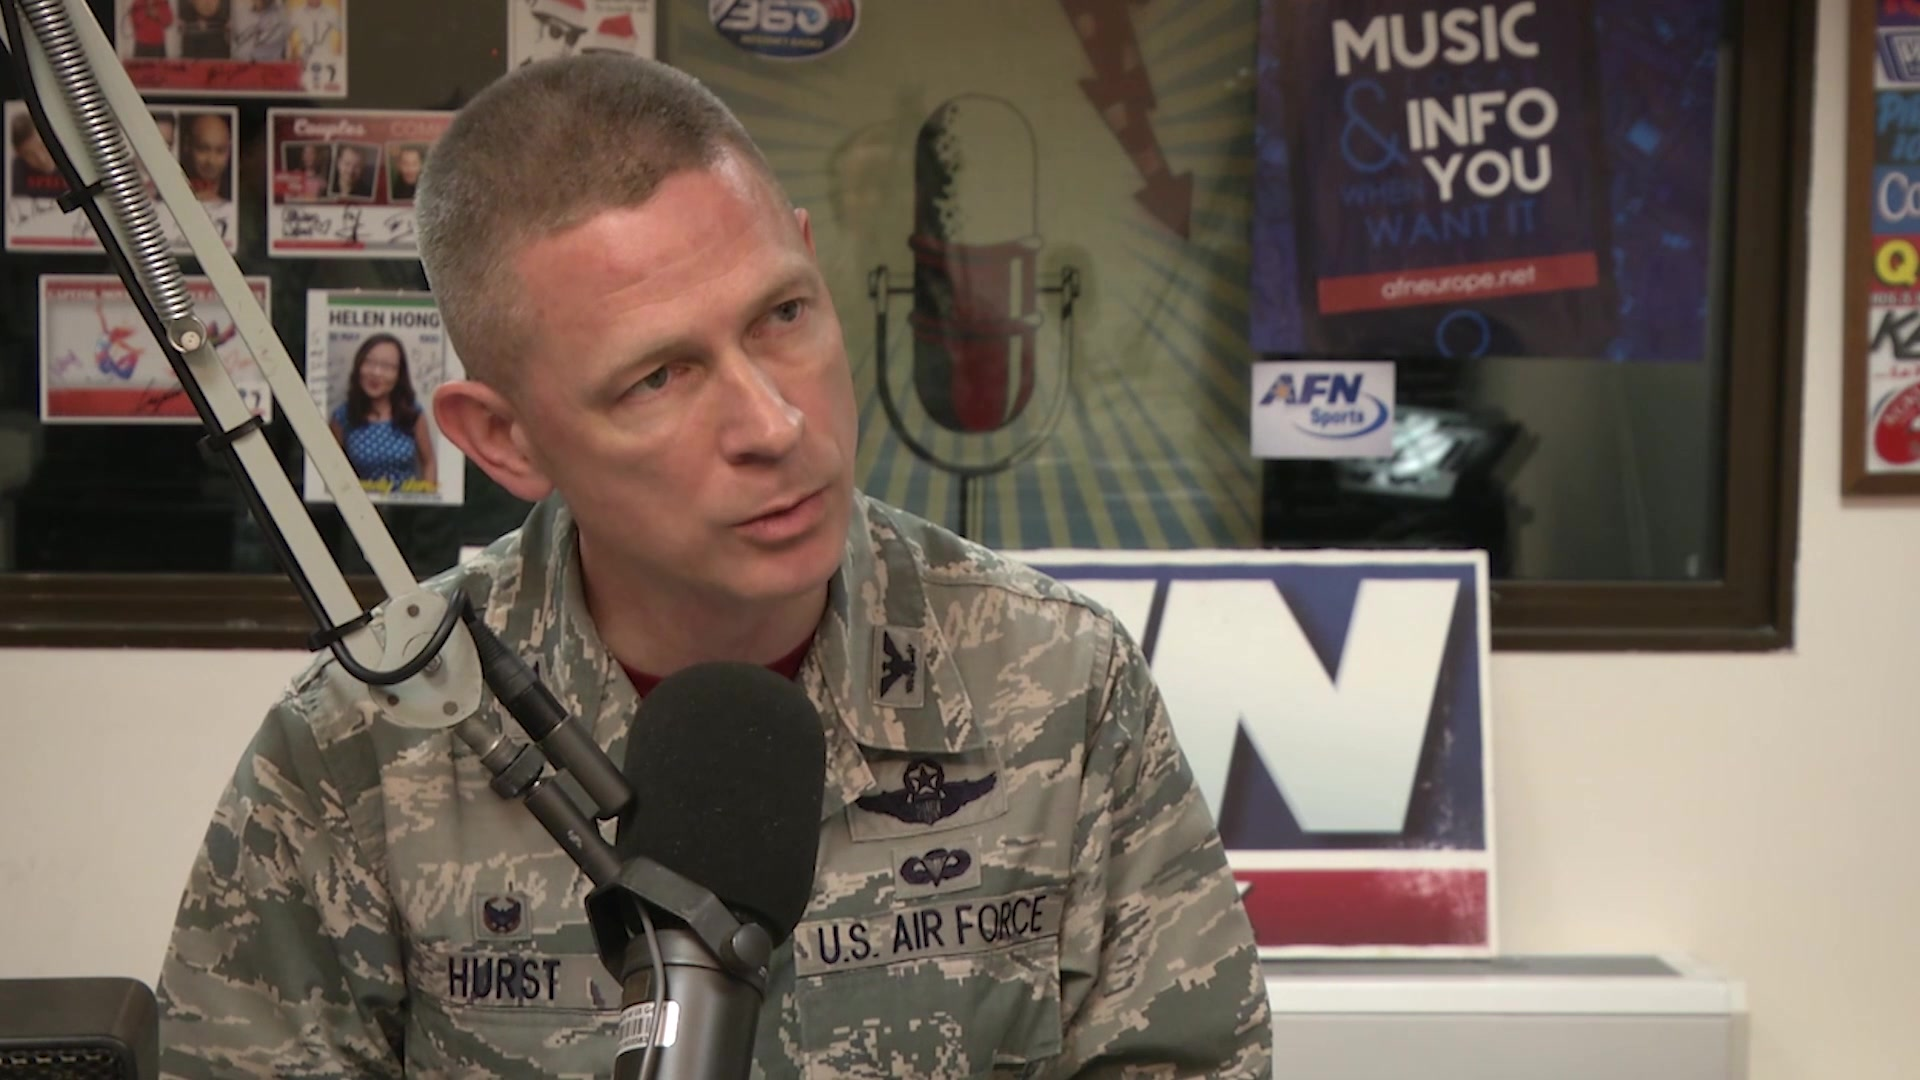 Asking for help is hard. Our Wing has your back. Listen to Col. Britt Hurst, 39th Air Base Wing Commander, talk about some of the agencies you can go to and the importance of taking care of yourself, so you can take care of your fellow wingmen and the mission.